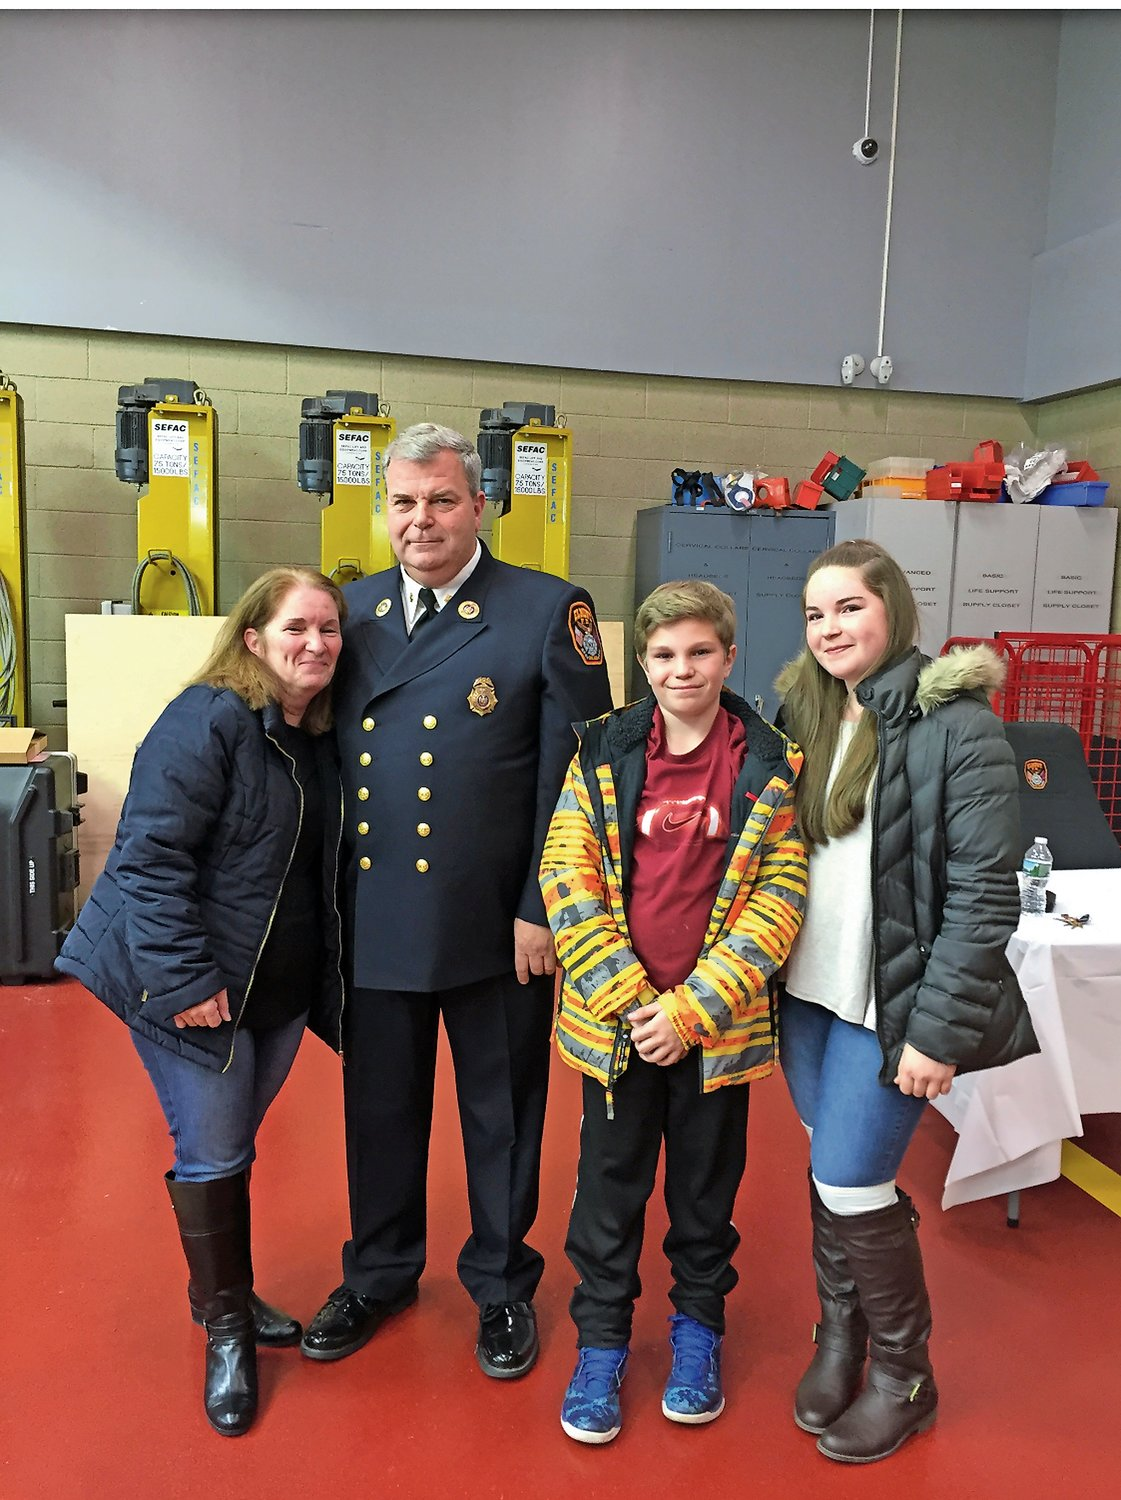 Carol served on various Parent Teacher Associations, and Frank is a commissioner for the Elmont Fire Department. Nick and Samantha are 15 and 18.